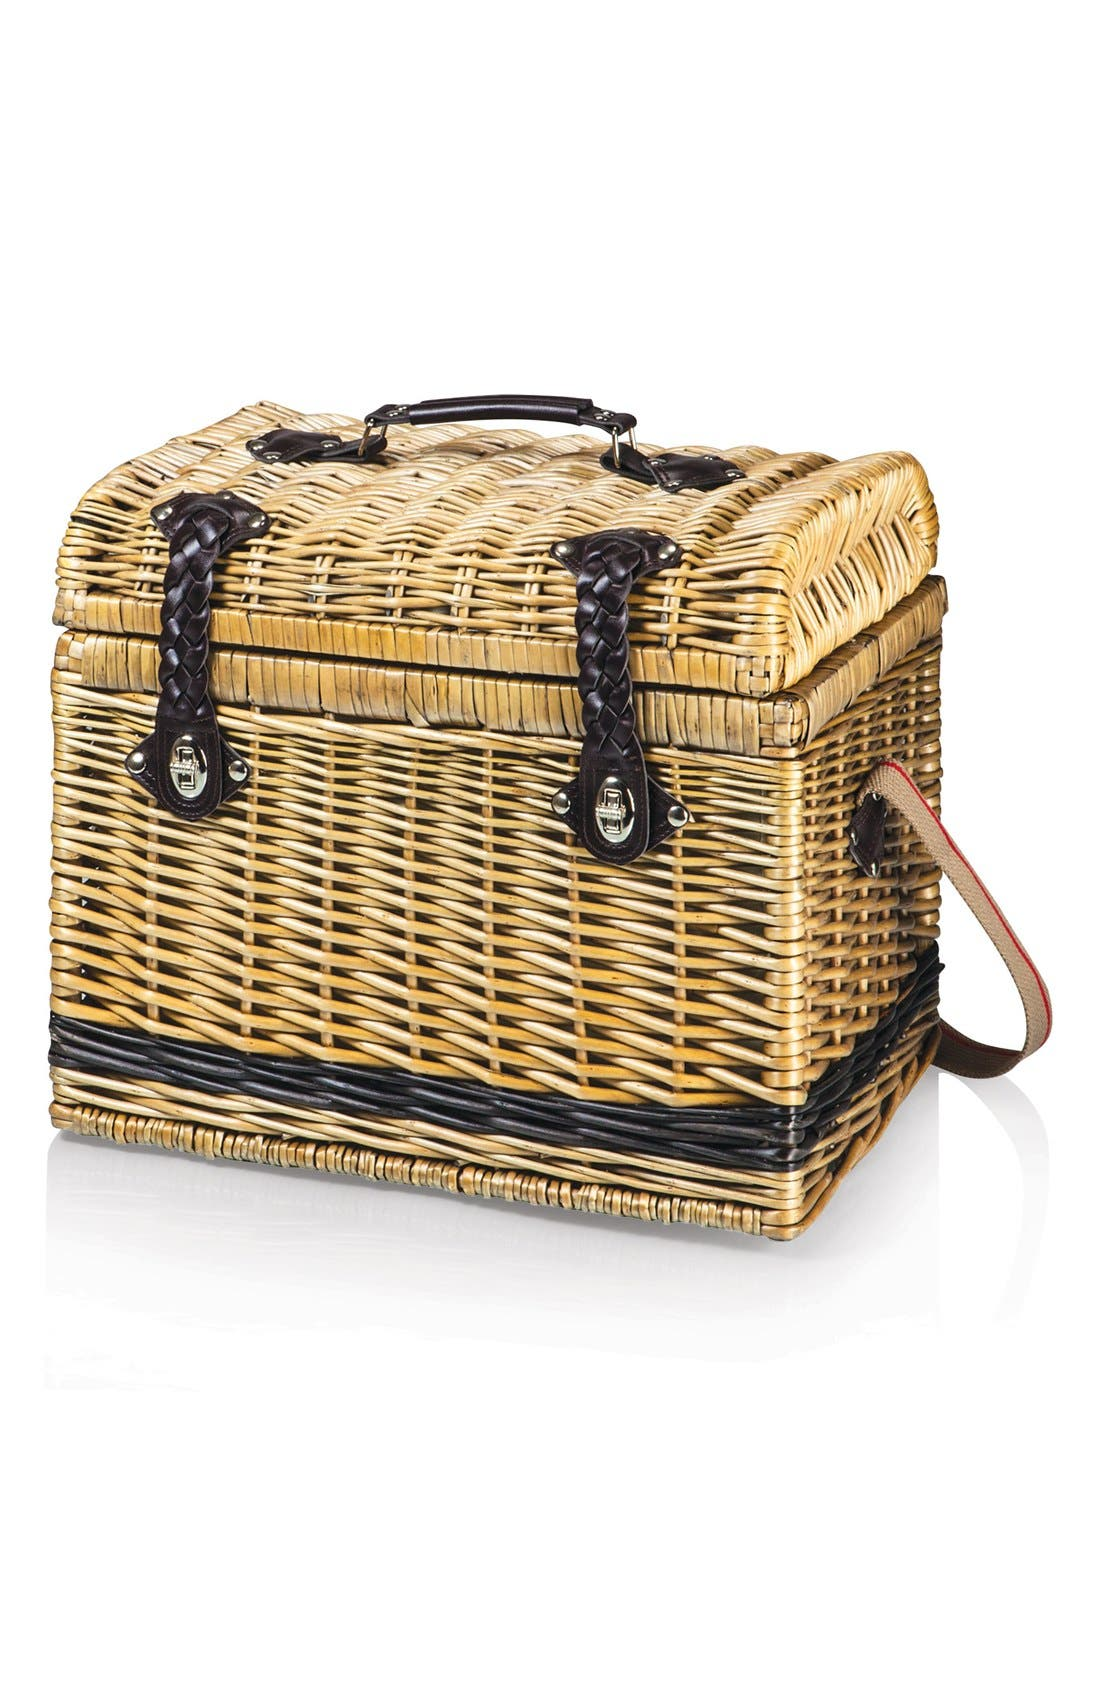 'Yellowstone' Wicker Picnic Basket,                             Alternate thumbnail 2, color,                             Brown